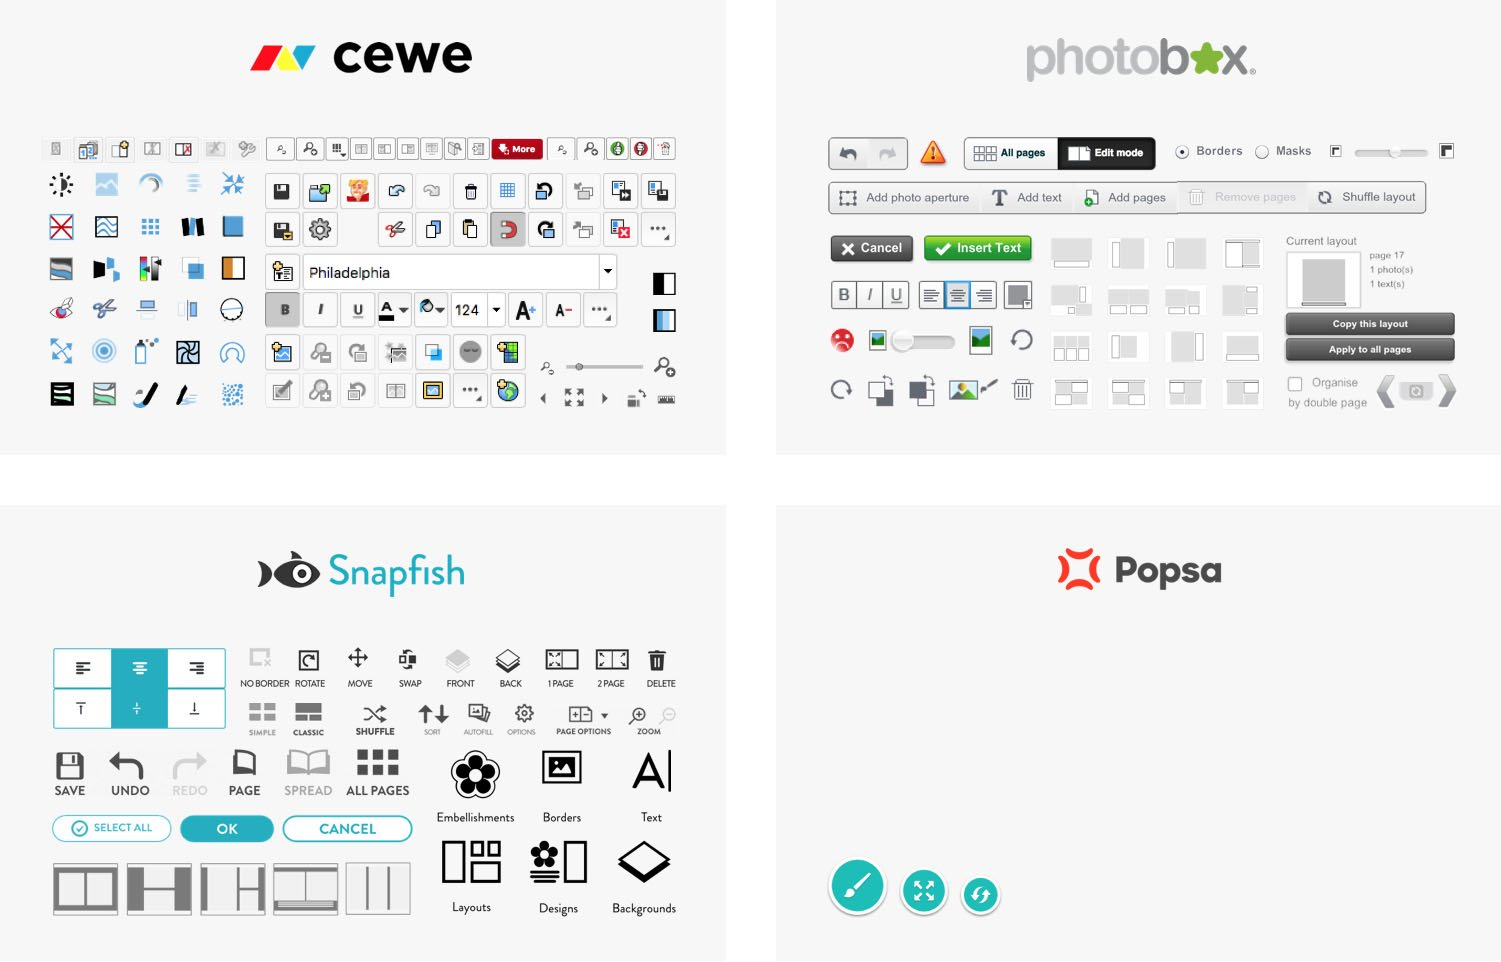 Comparing the user interfaces of Cewe, Photobox, Snapfish and Popsa